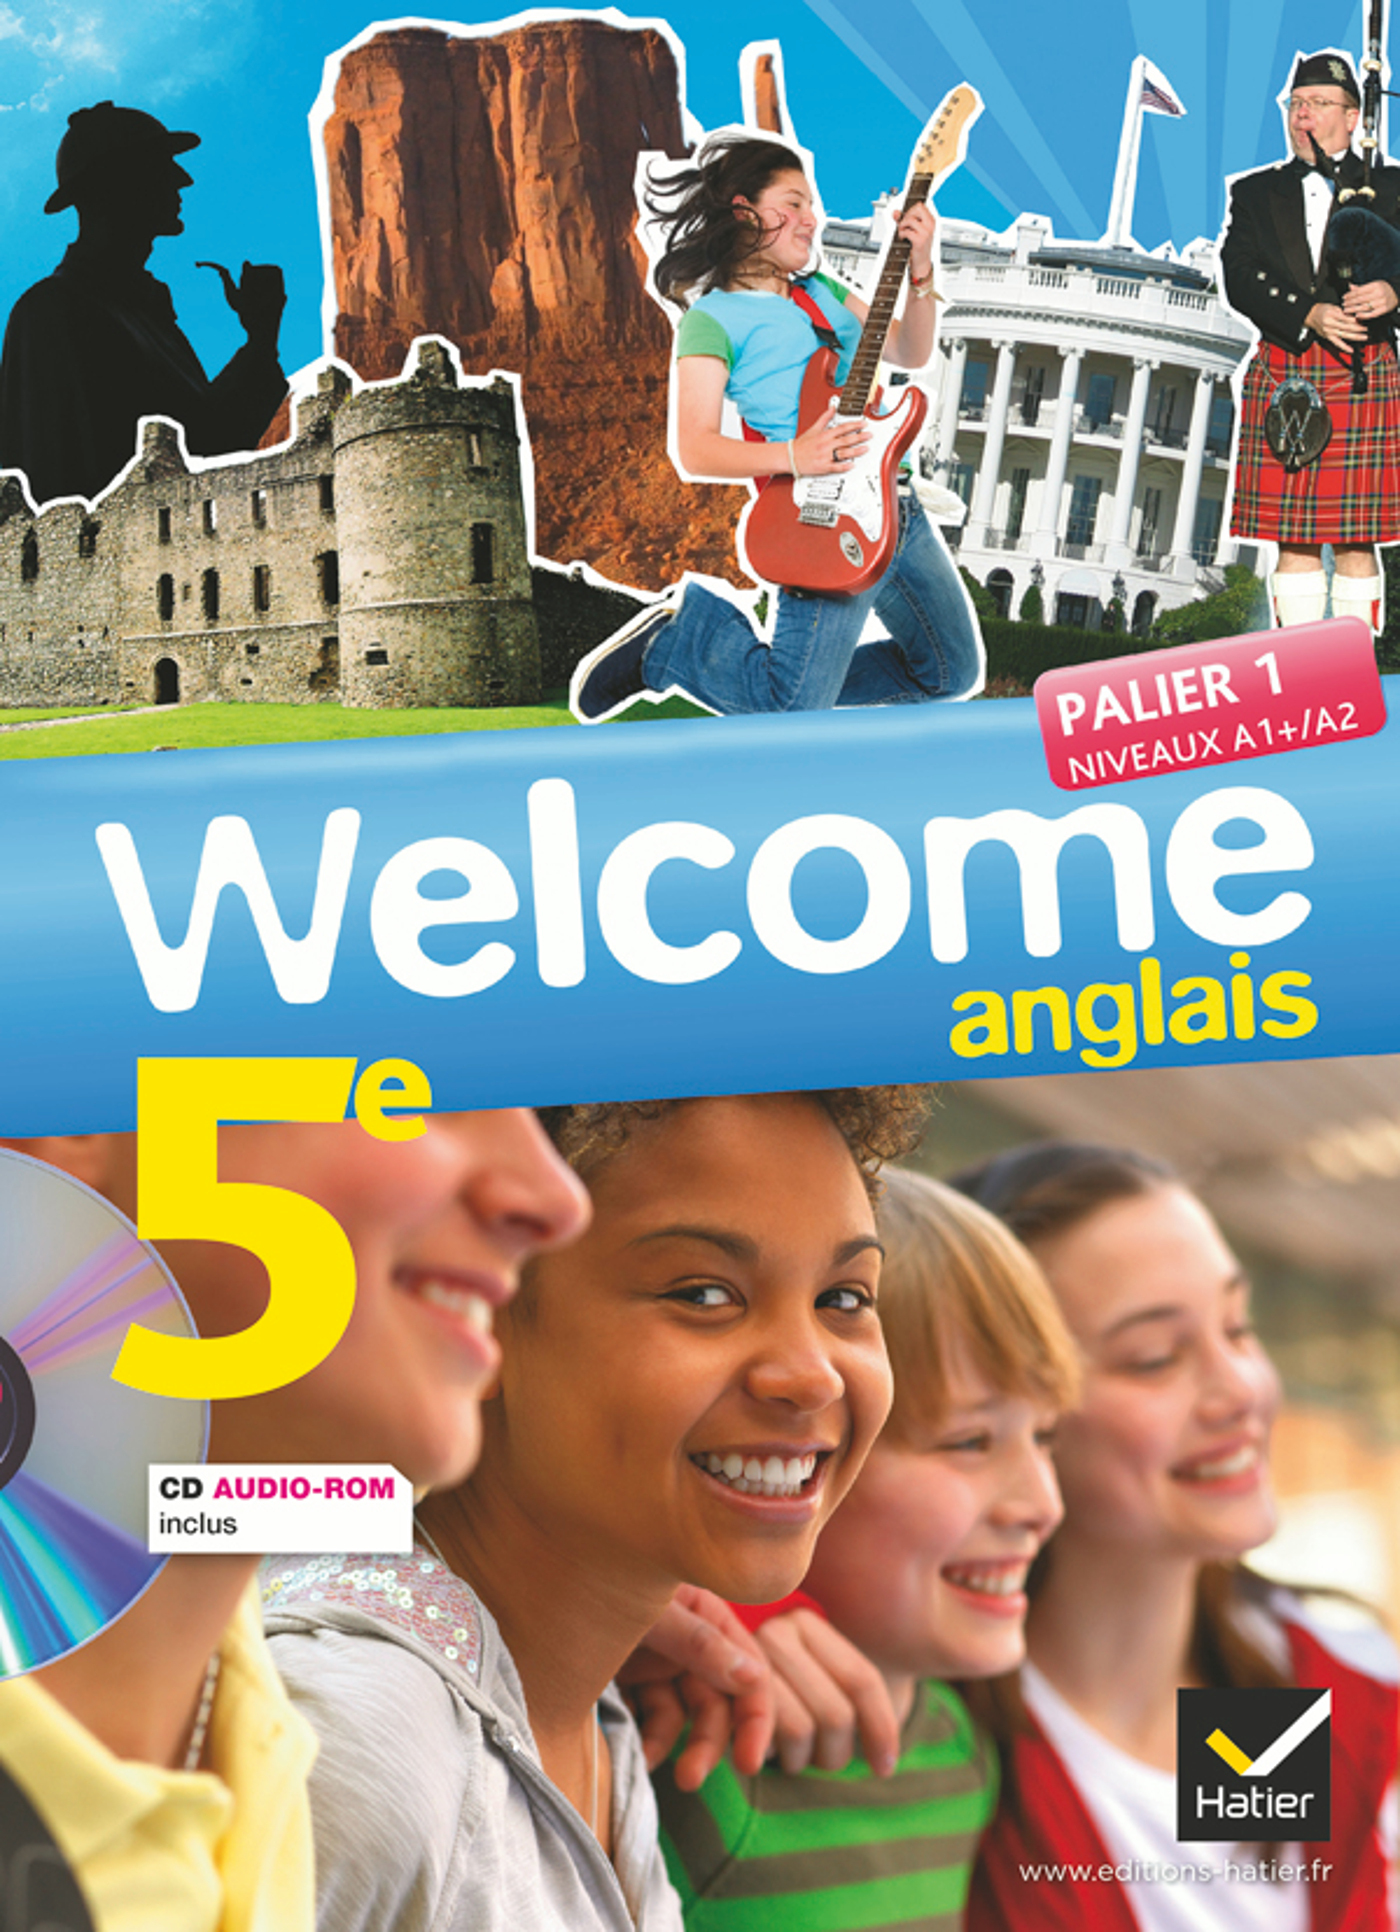 WELCOME ANGLAIS 5E ED. 2012 - MANUEL DE L'ELEVE + CD AUDIO-ROM